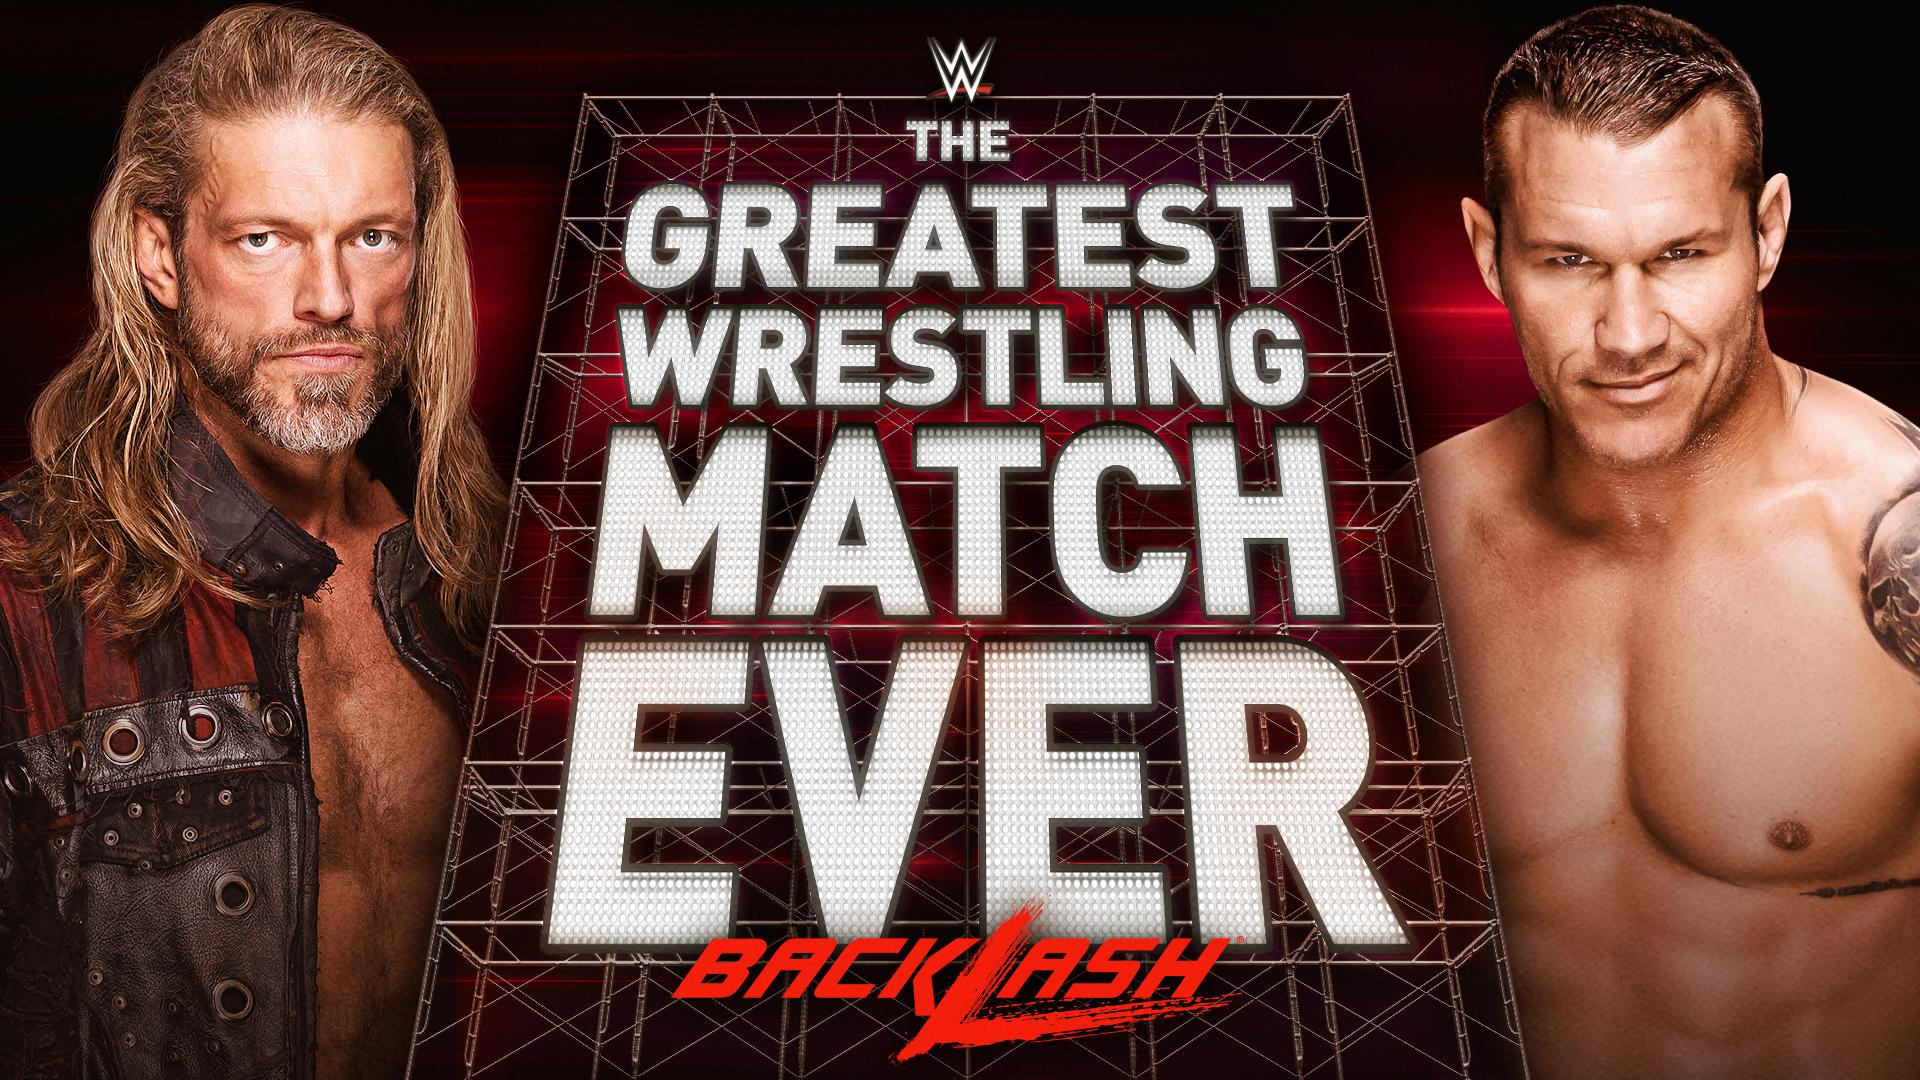 WWE Backlash 2020: Vince McMahon To Makes Major Changes To The PPV 1